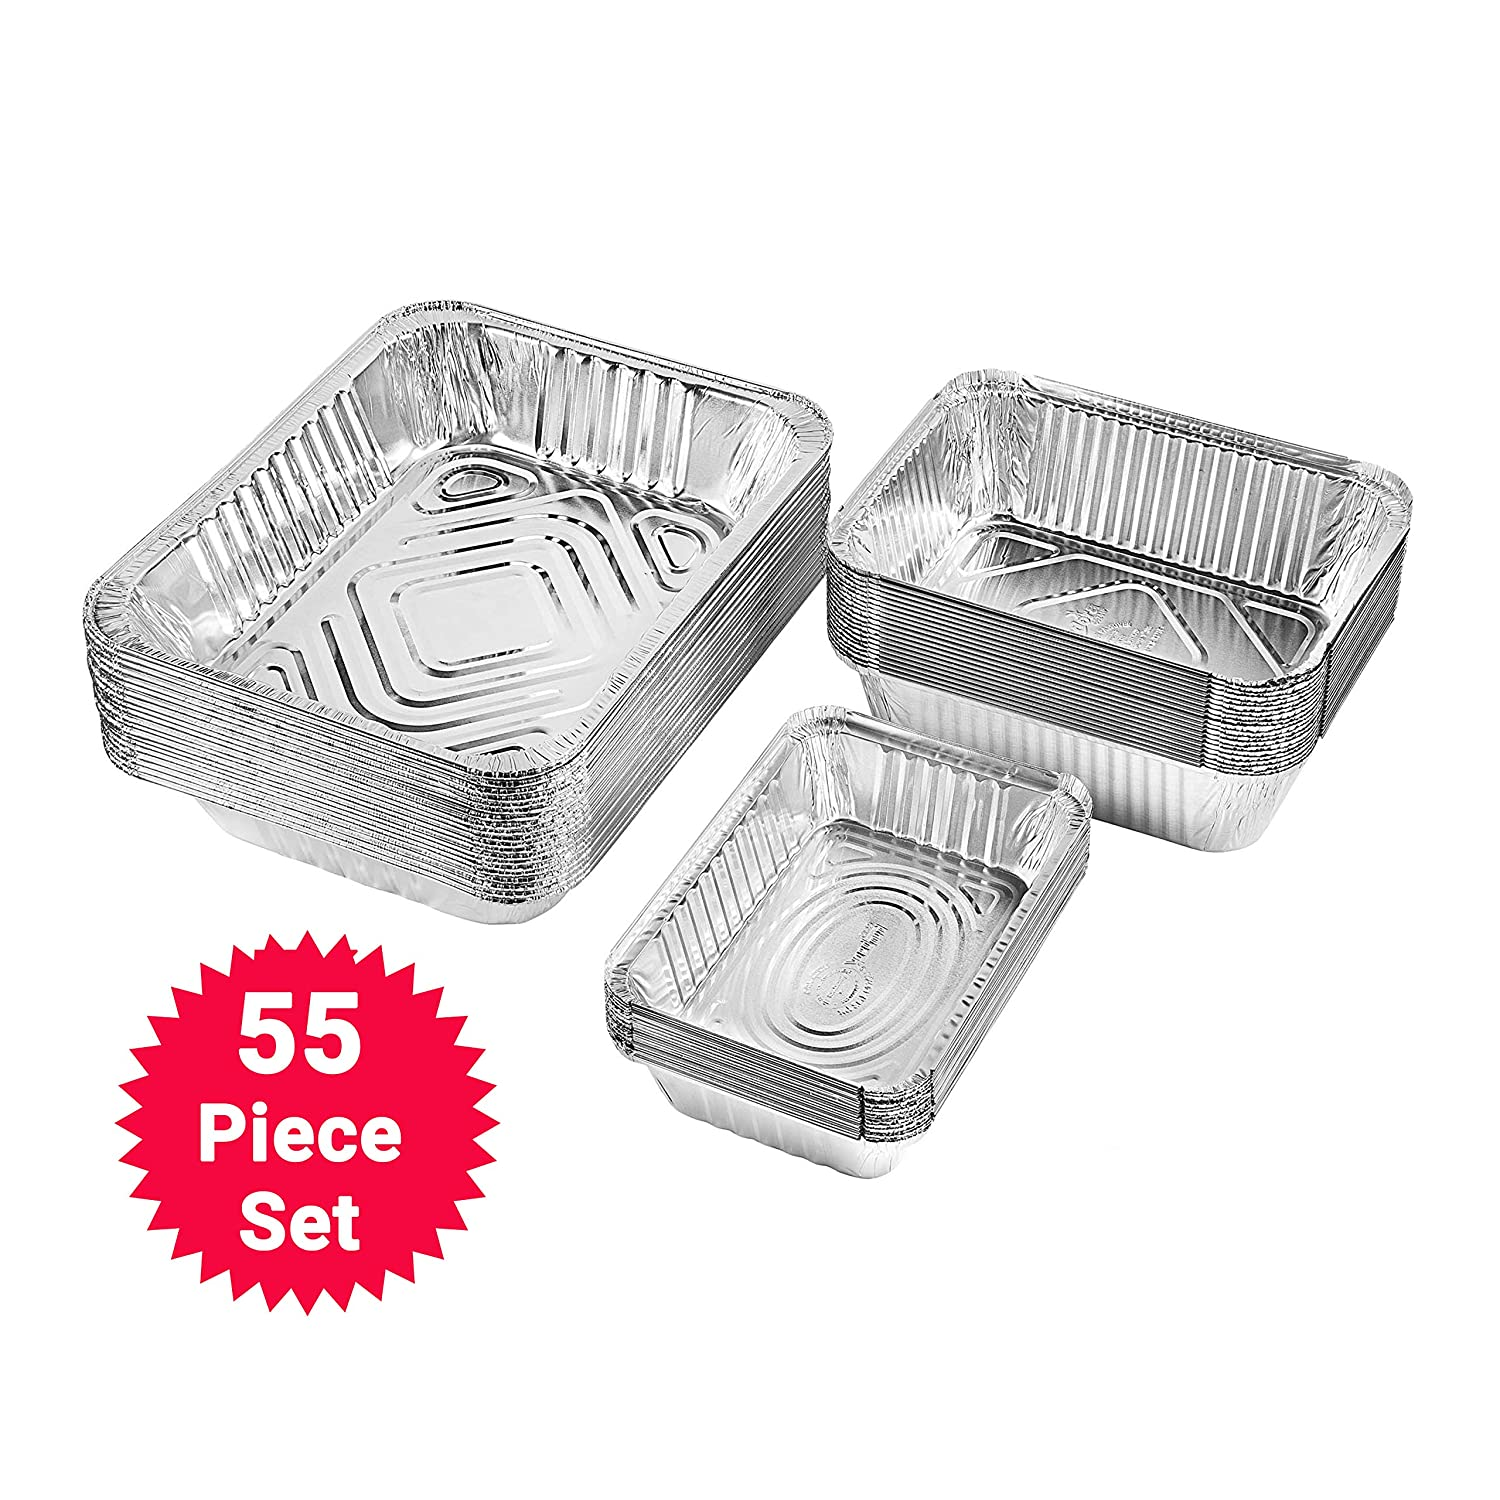 Netko Aluminum Foil Pans Set | Safe Party Food Storage Containers | Disposable & Reusable Deep Kitchen Containers for Baking, Buffets, Cooking, Catering & Roasting | 3-Size Pack Pack of 55